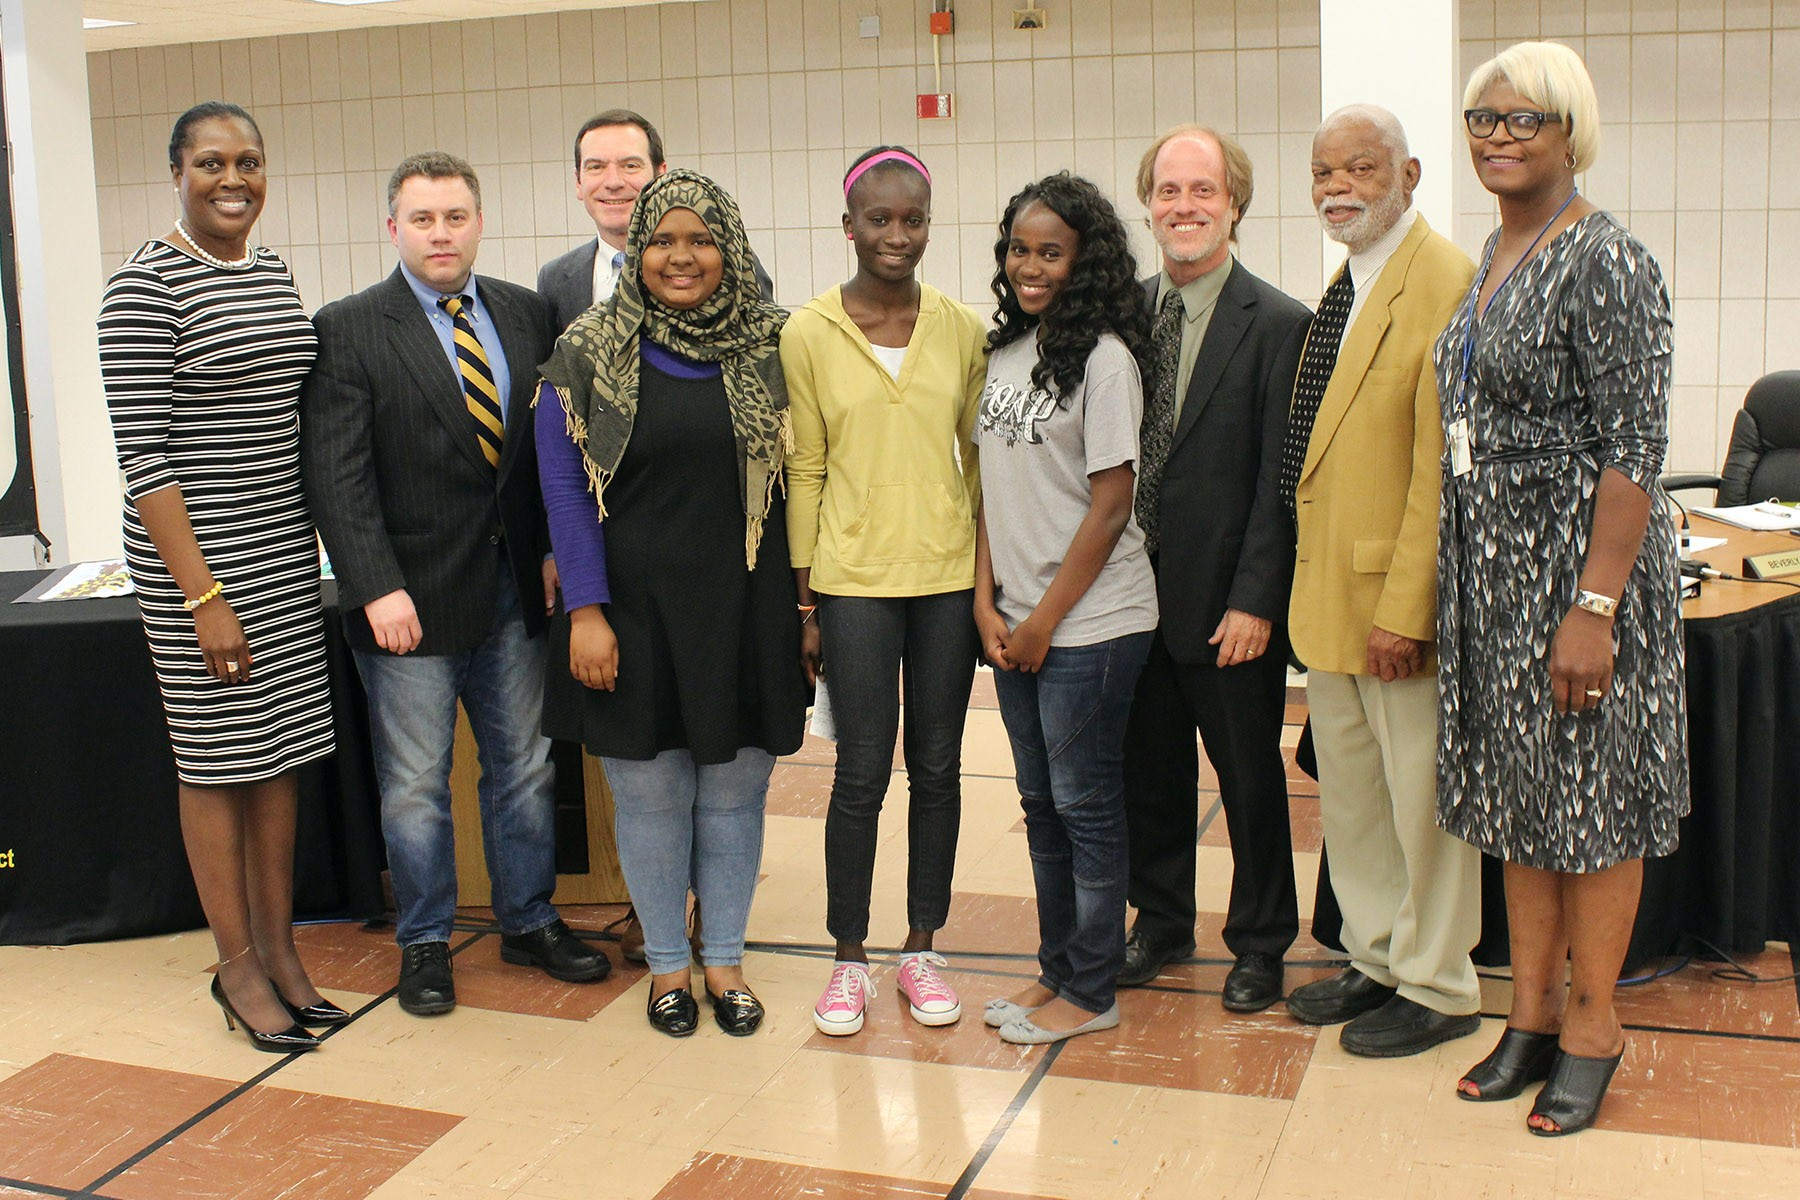 Three foreign exchange students from the high school's AFS program spoke at the meeting.